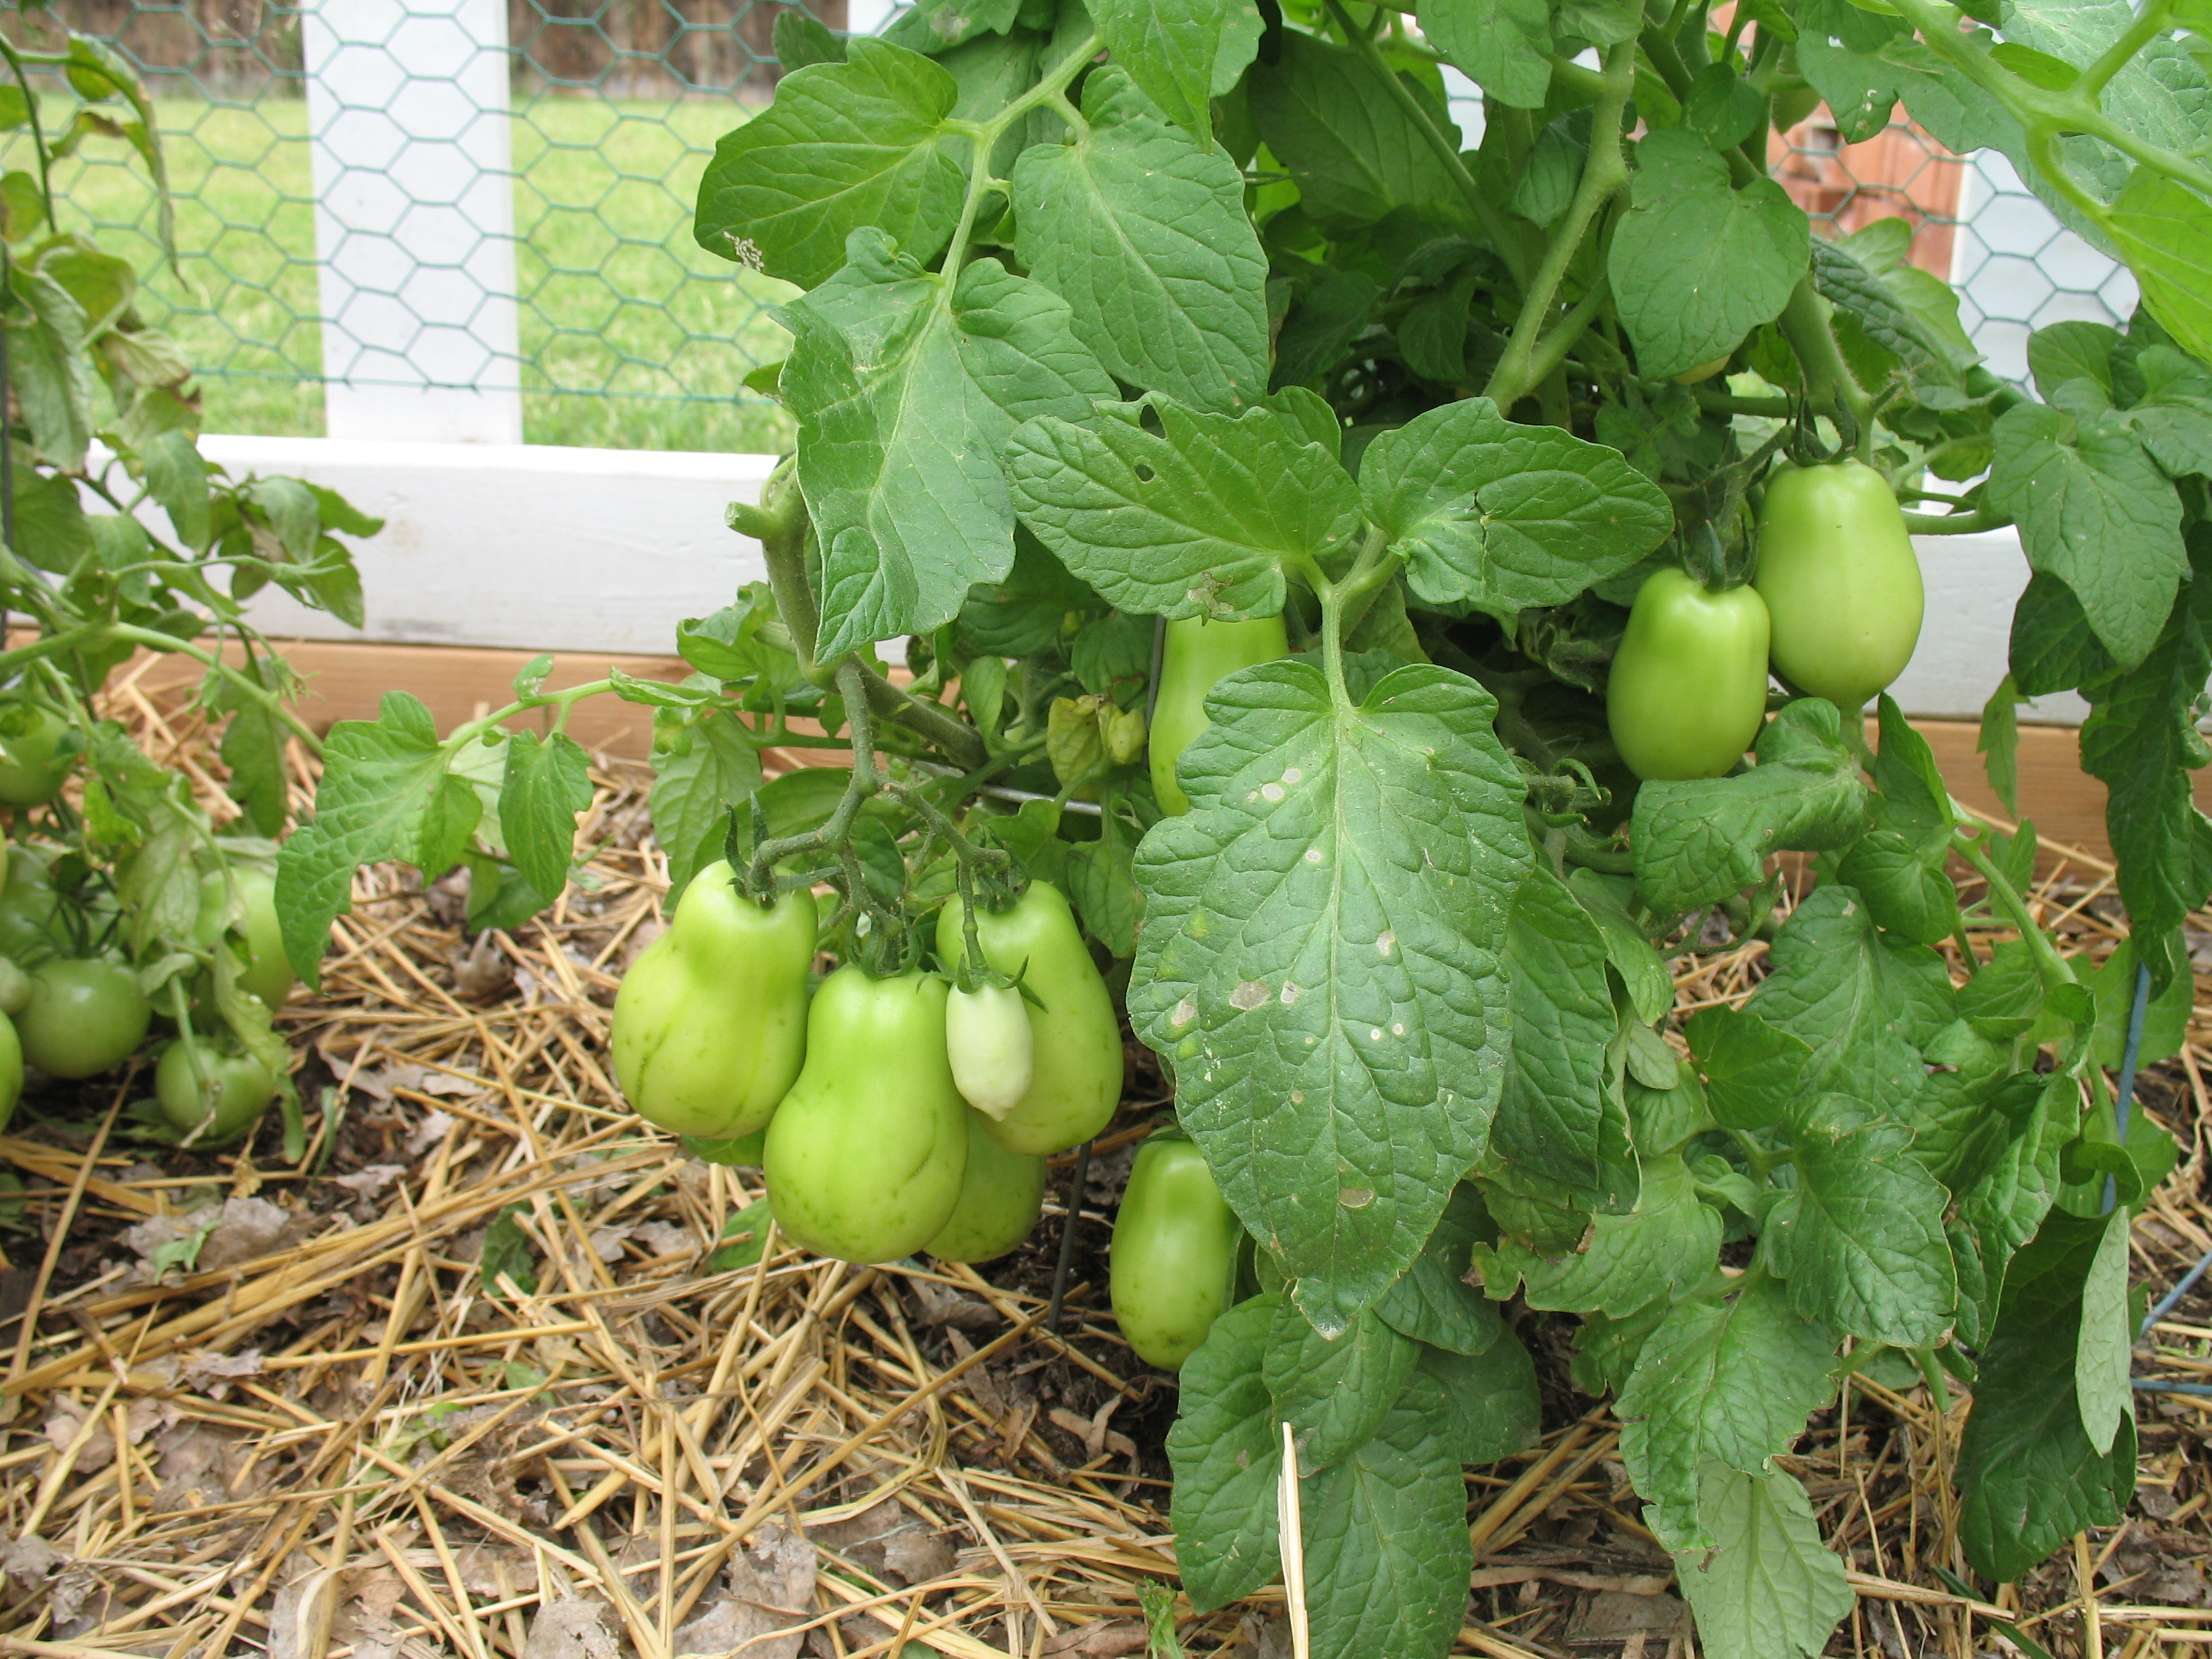 Home produce garden - Arizonans Look To Save On Their Food Budget By Starting Backyard Gardens